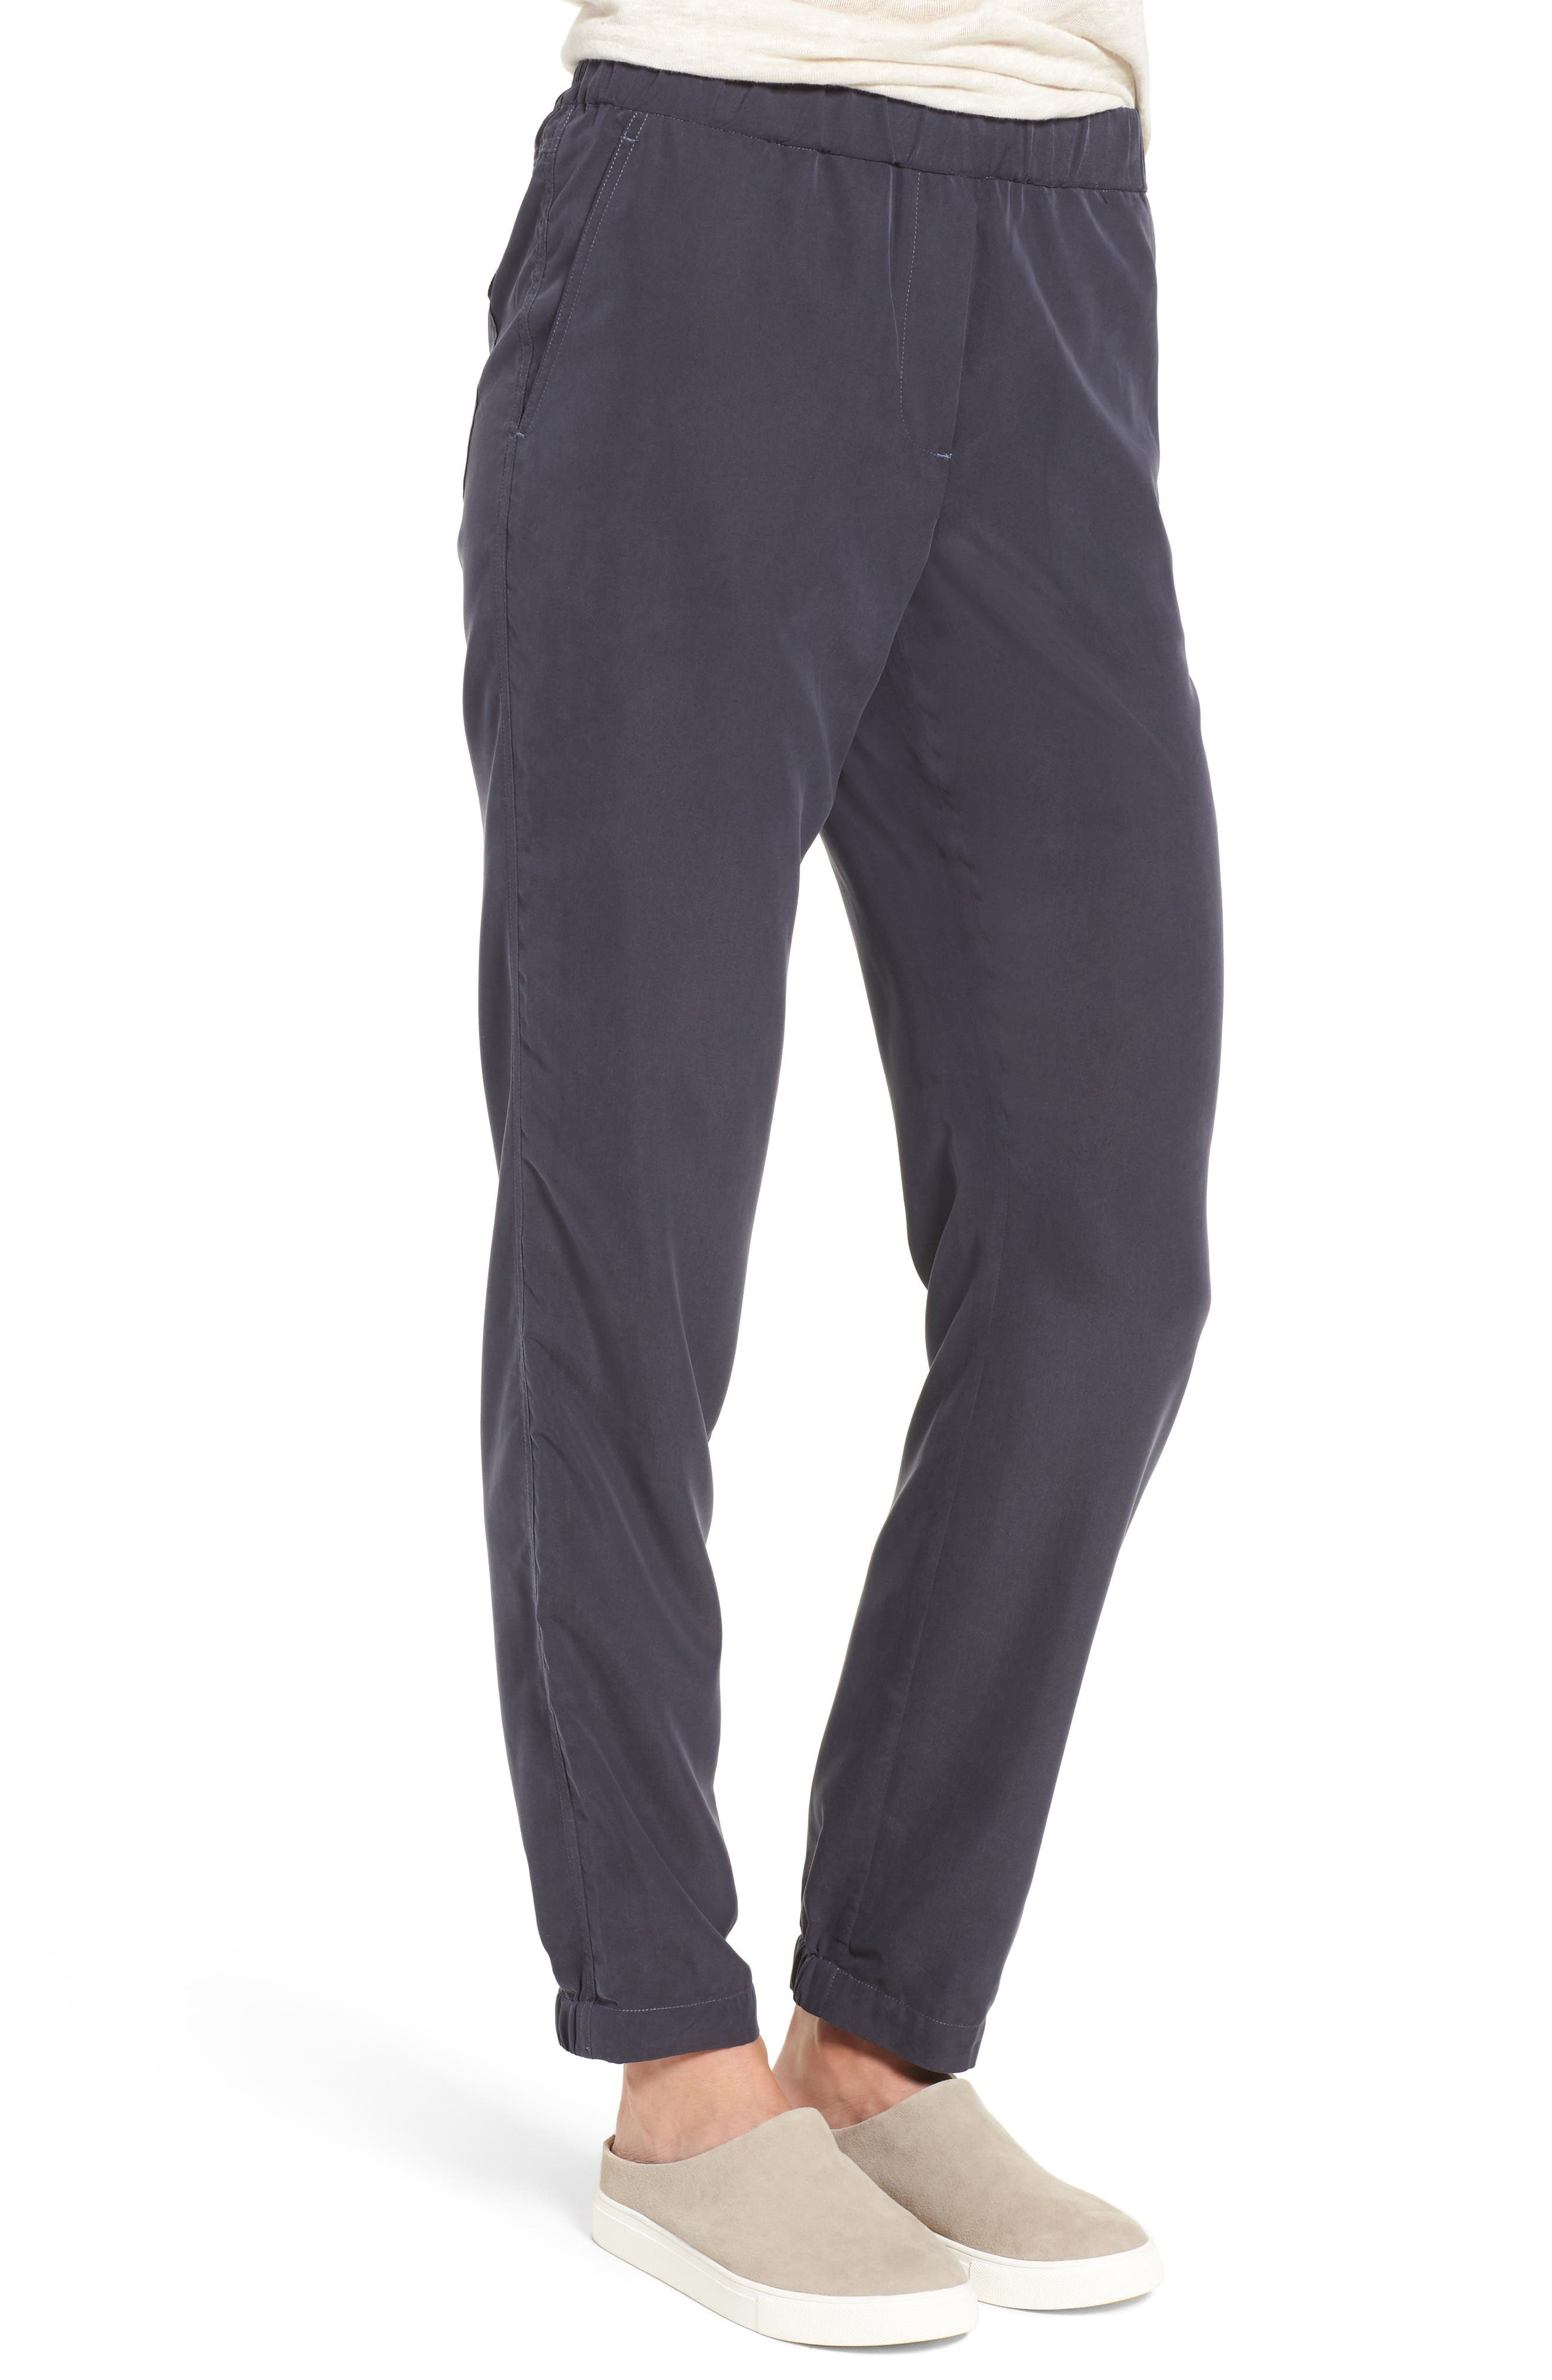 City Slicker Pants,                             Alternate thumbnail 6, color,